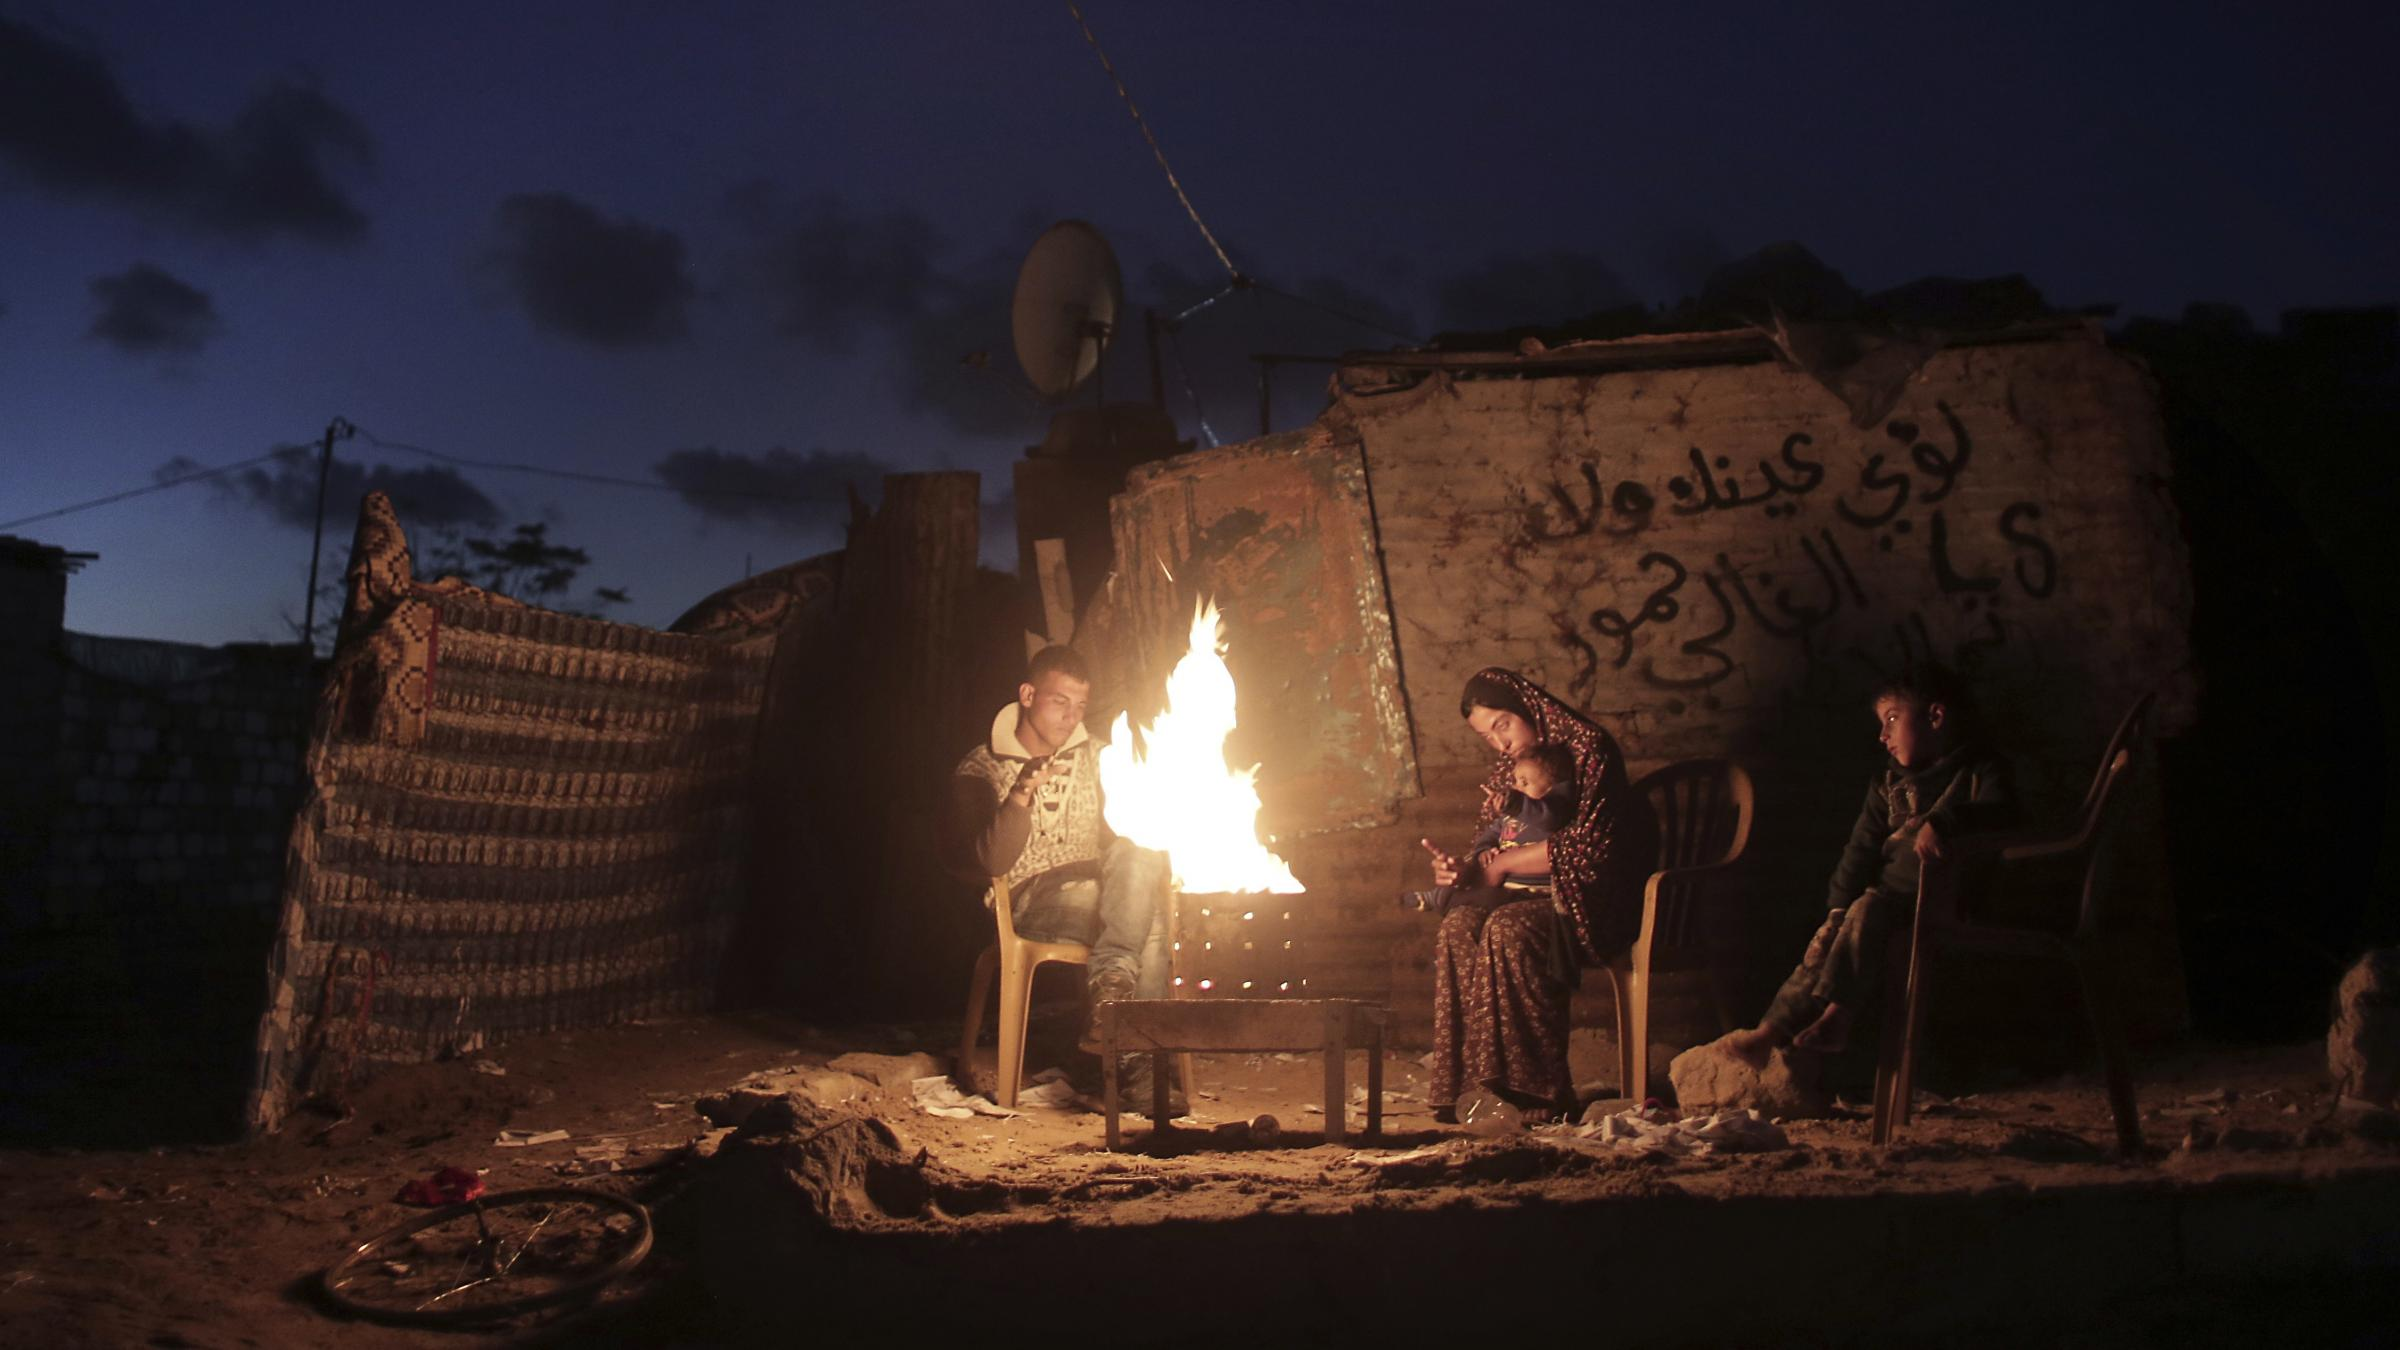 Israel reduces power supply to Hamas-ruled Gaza